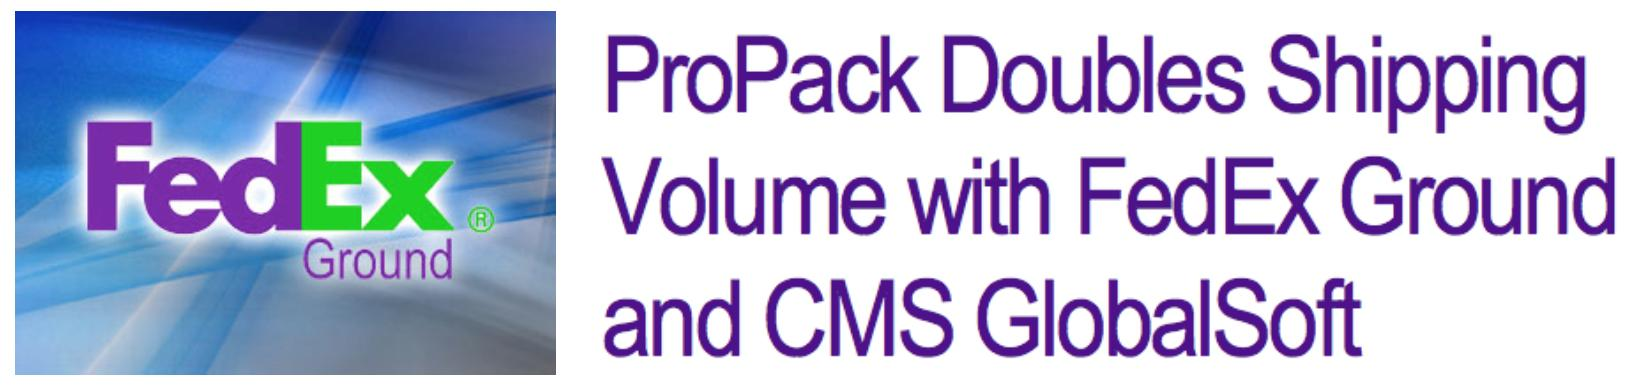 ProPack New FedEx Case Study Mentions ProPack